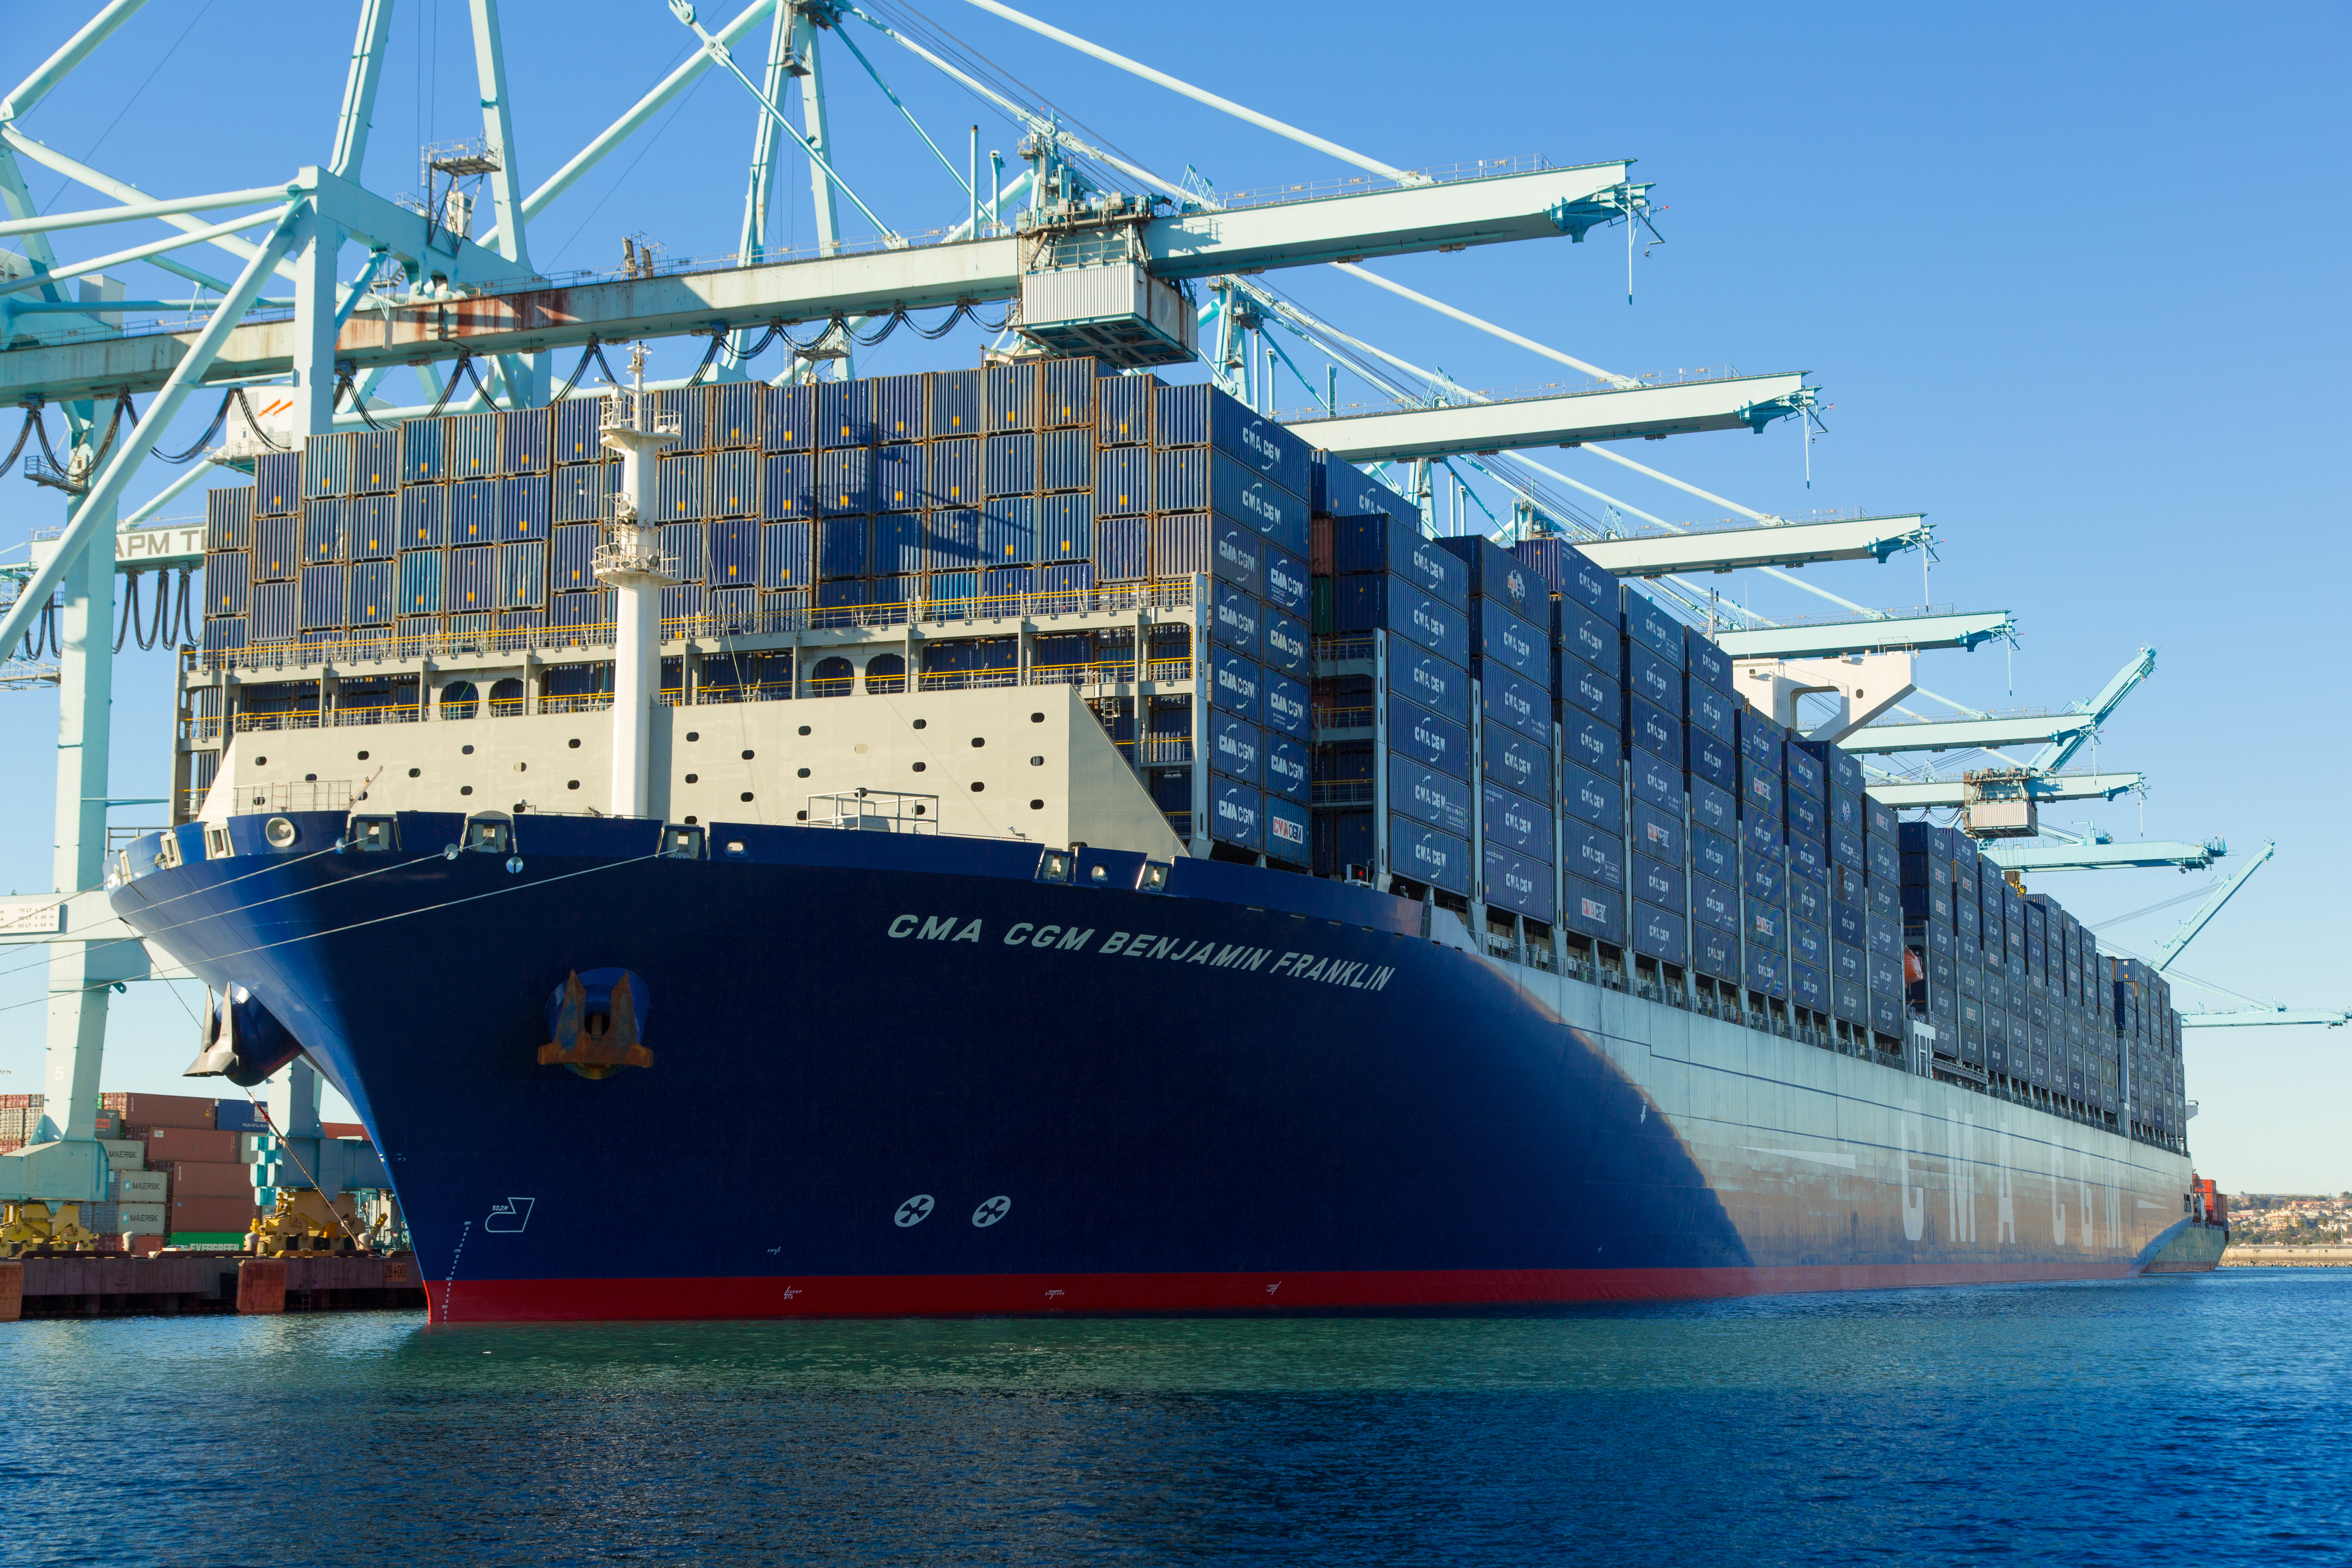 The Port Of Los Angeles Welcomes Largest Container Ship Yet To U.S.